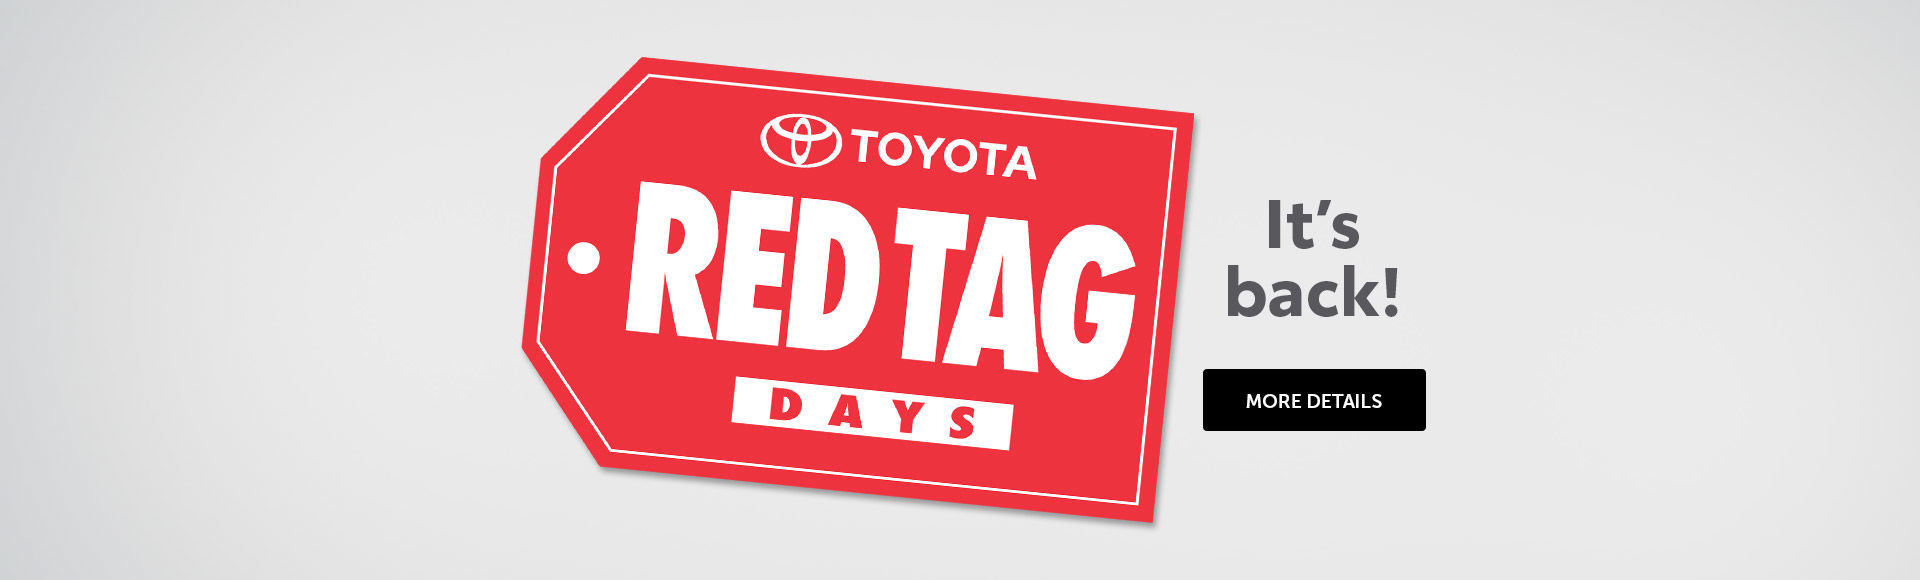 Toyota' Red Tag Event